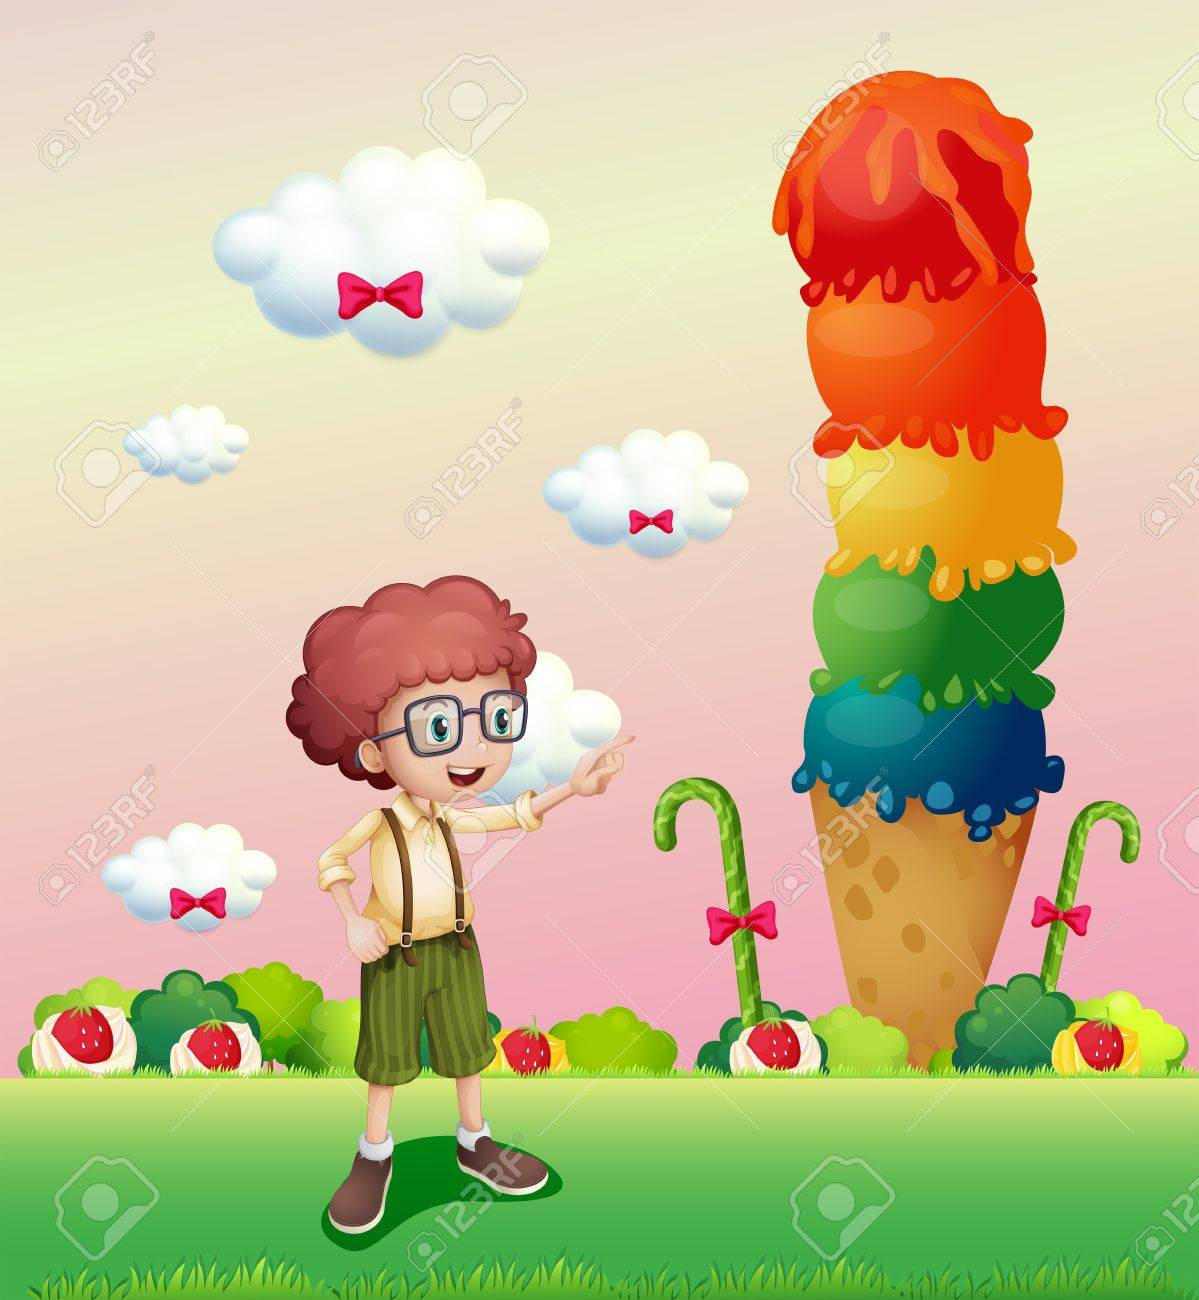 Illustration of a young gentleman standing near the giant icecream Stock Vector - 21658912